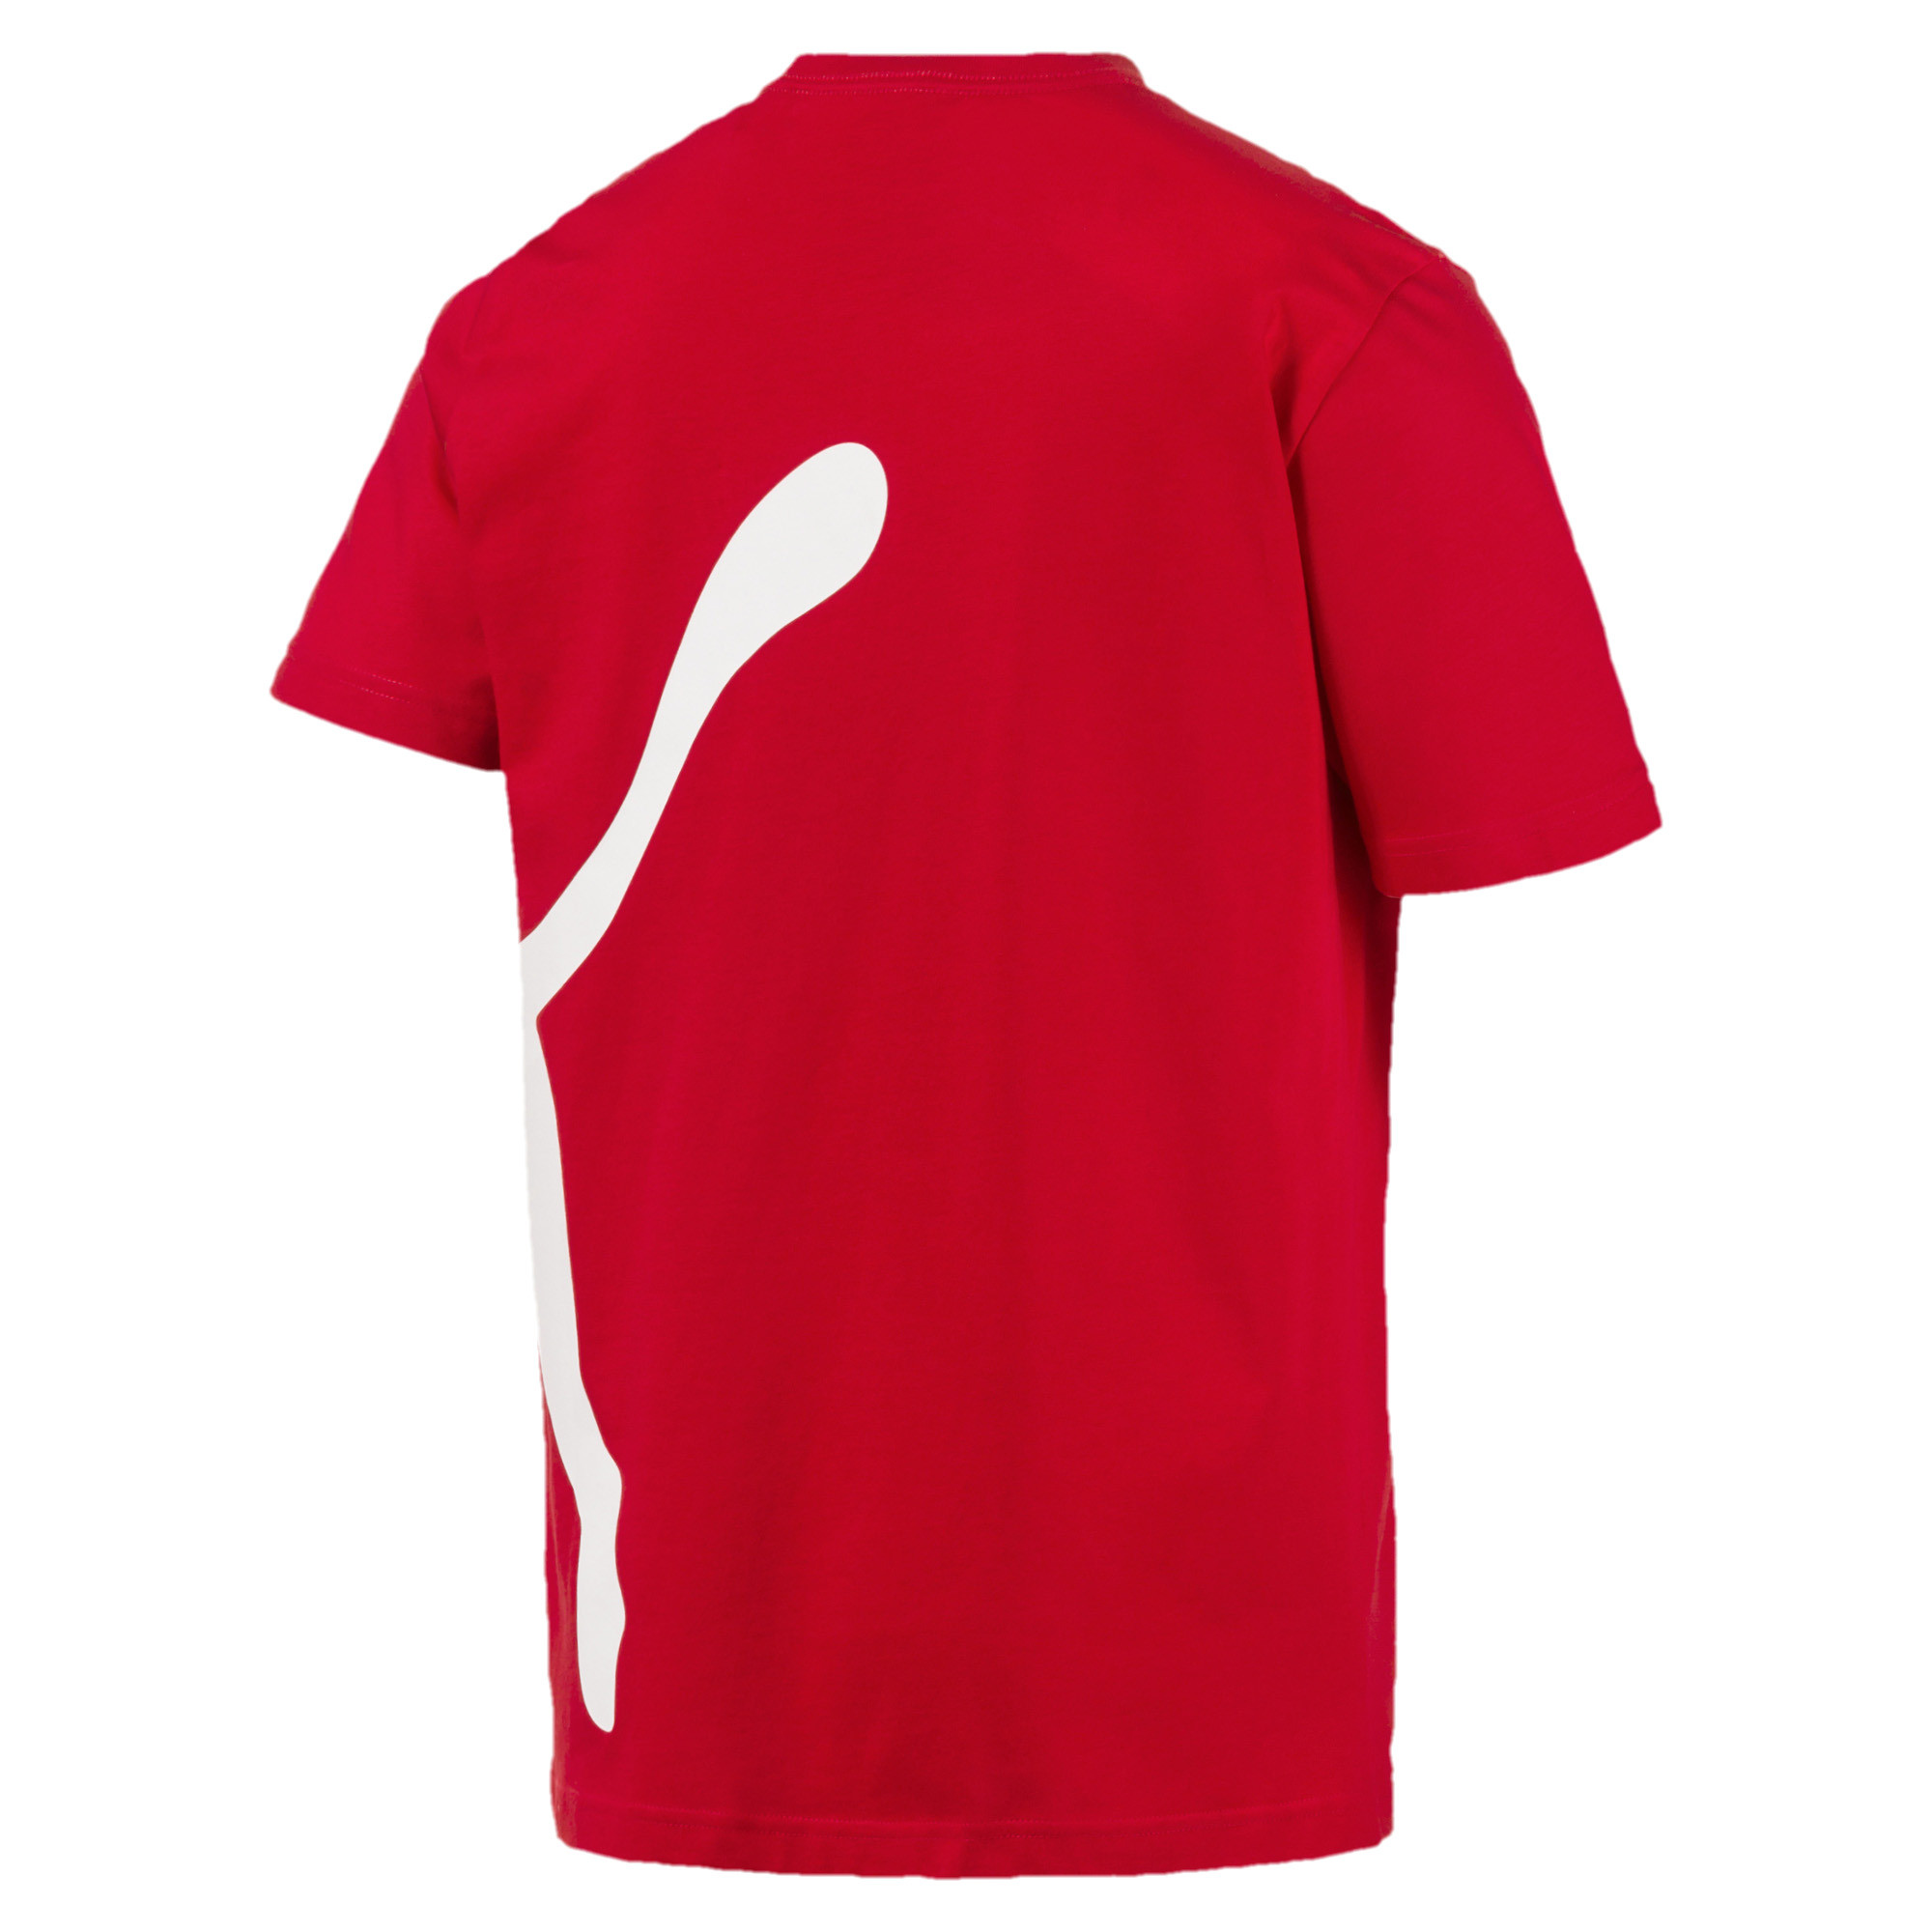 PUMA-Big-Logo-Men-039-s-Tee-Men-Tee-Basics thumbnail 22